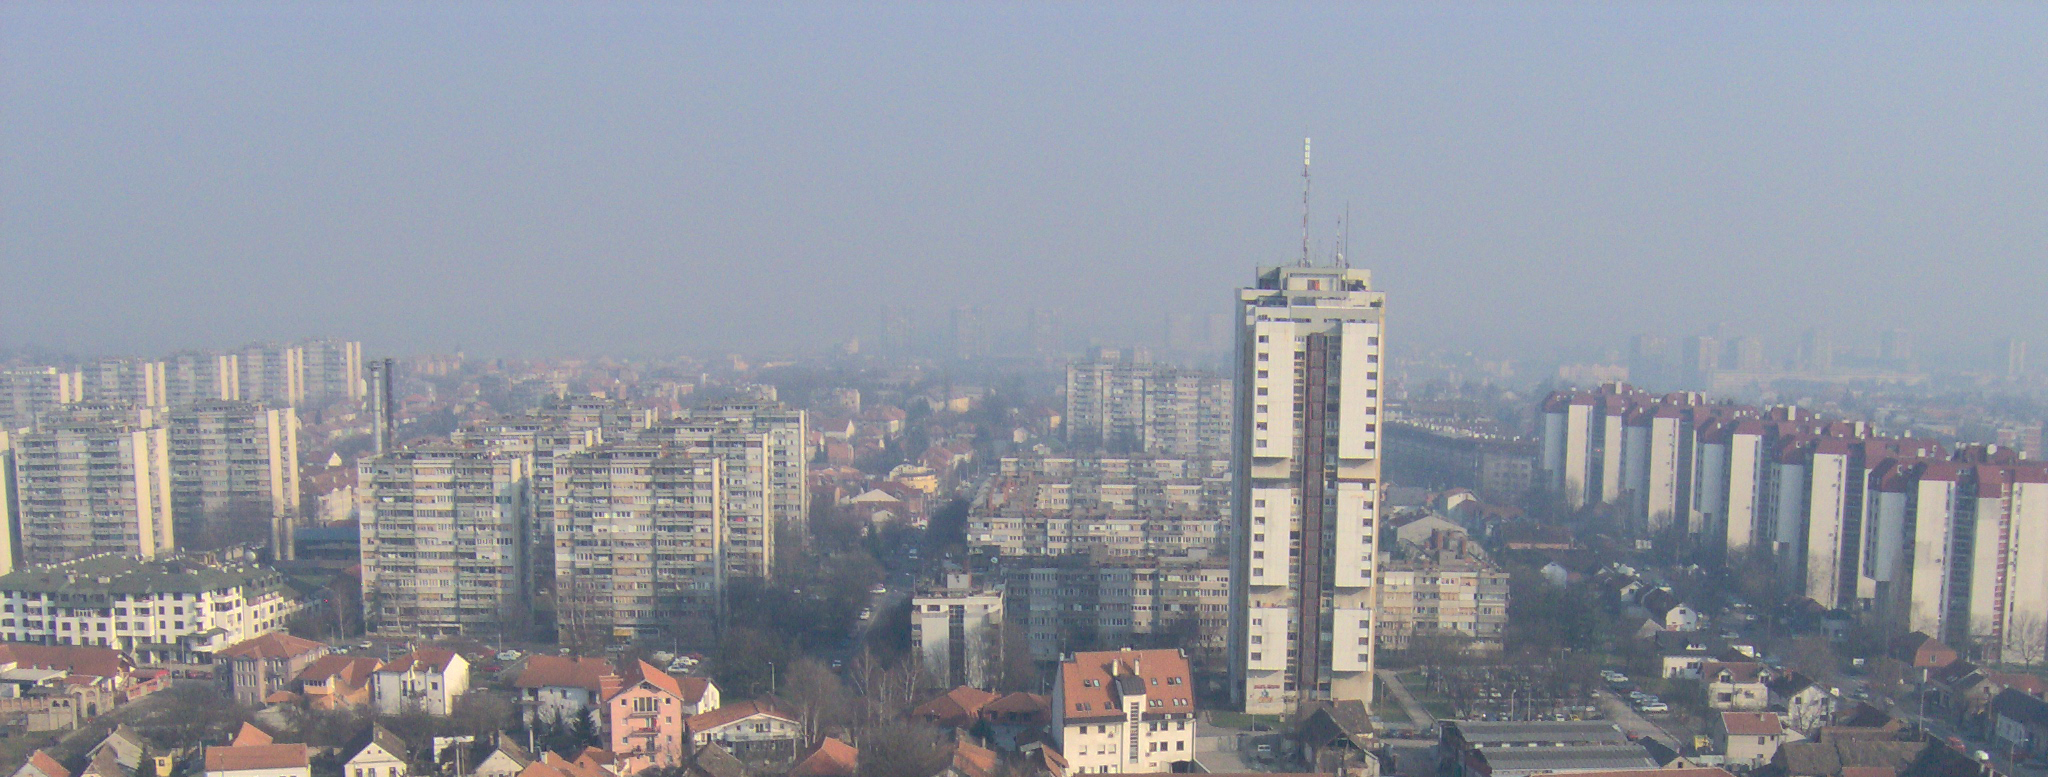 Zemun Serbia  city images : Zemun Novi Grad Wikimedia Commons